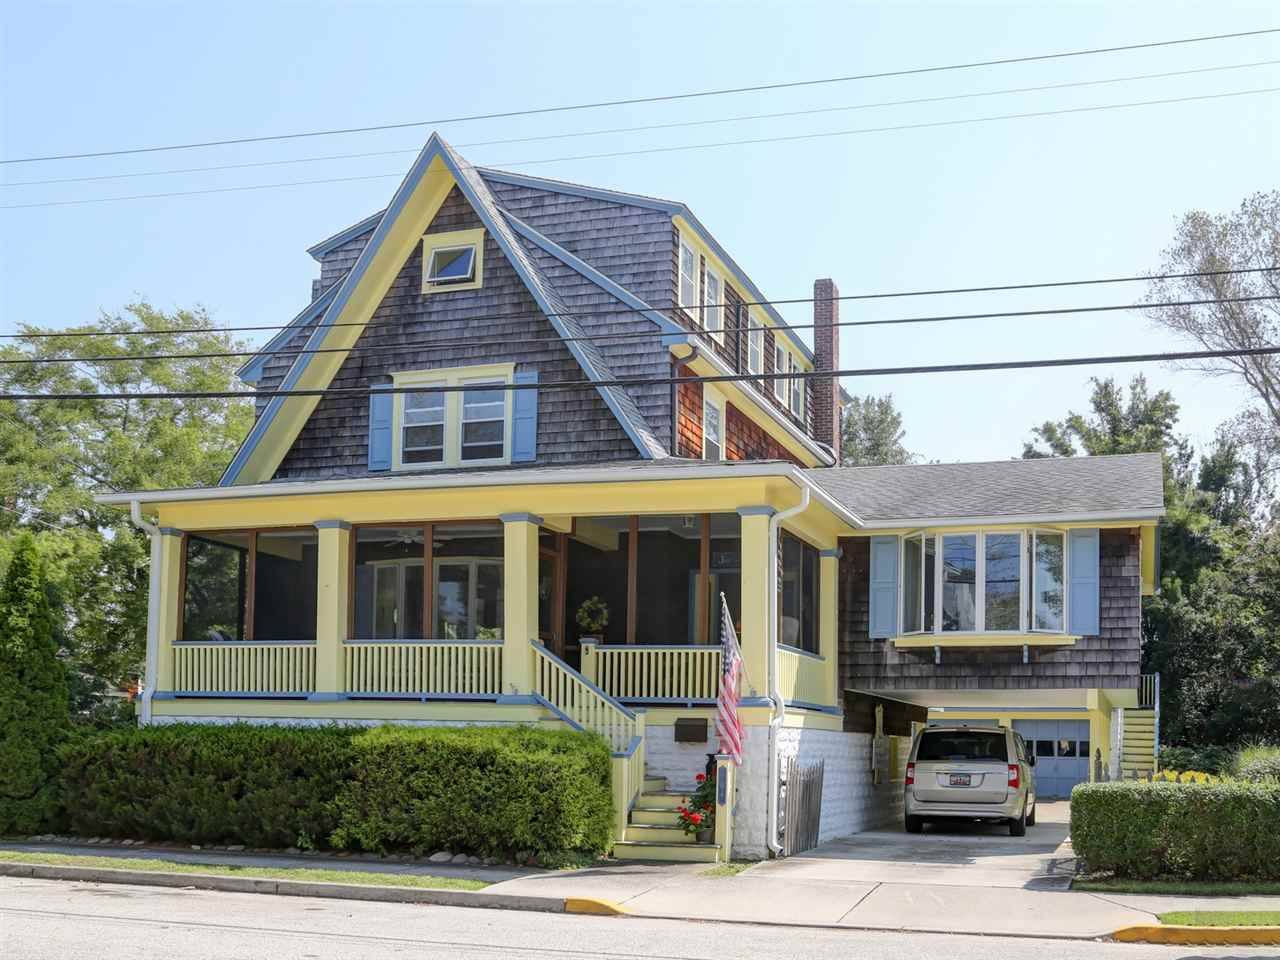 Single Family Home for Sale at 704 Benton 704 Benton Avenue Cape May, New Jersey 08204 United States